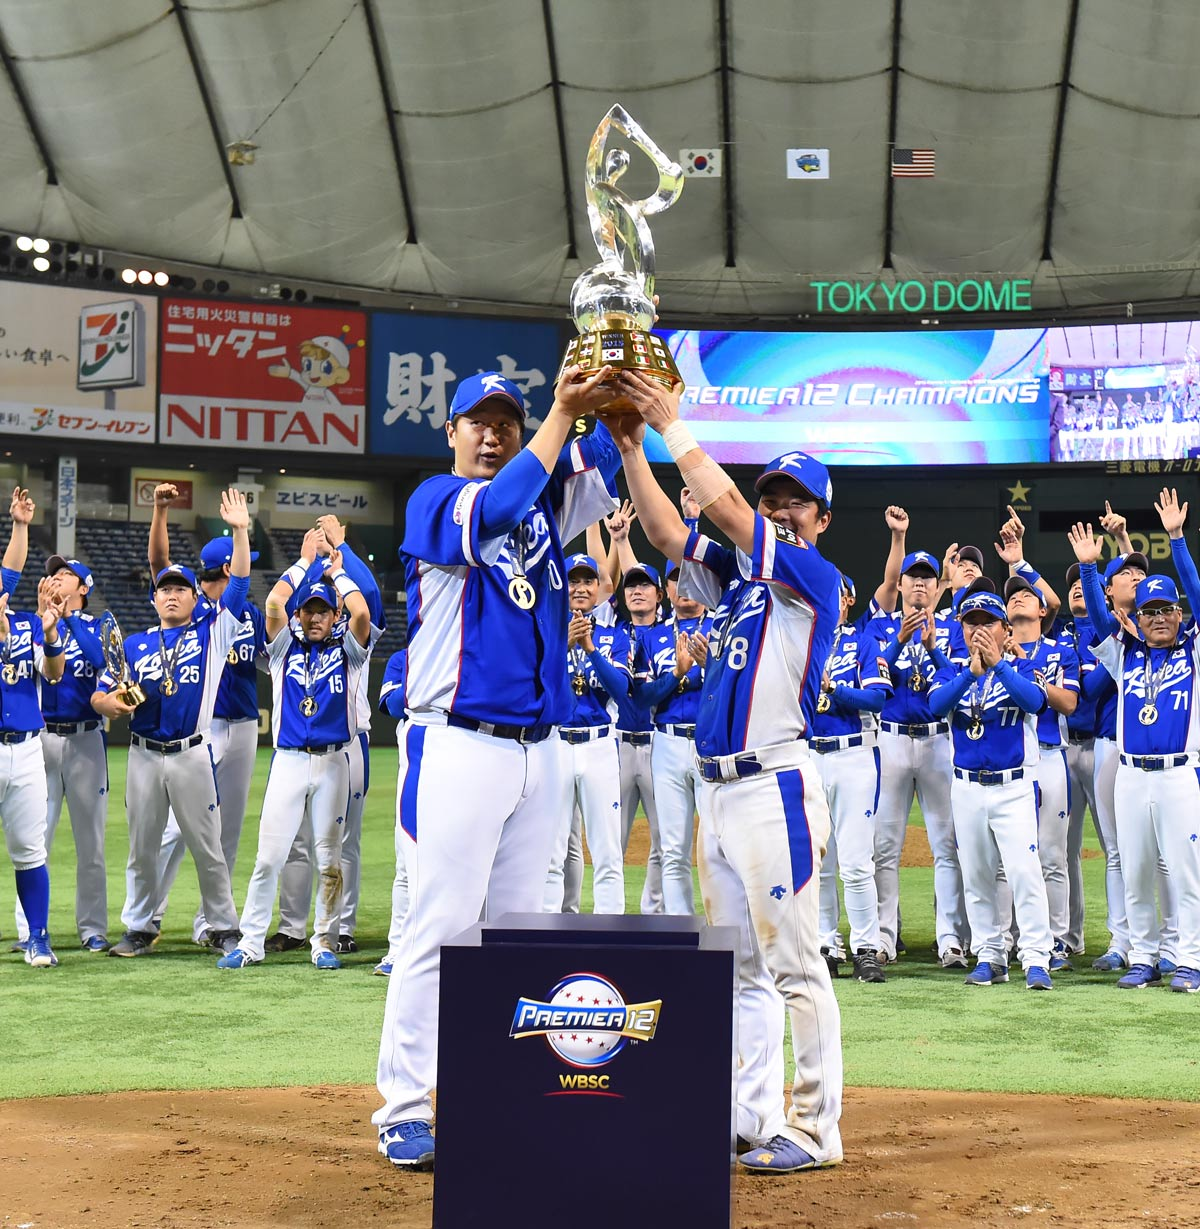 S Korea Crowned Premier12 Global Champions Defeat USA 8-0 in Finale